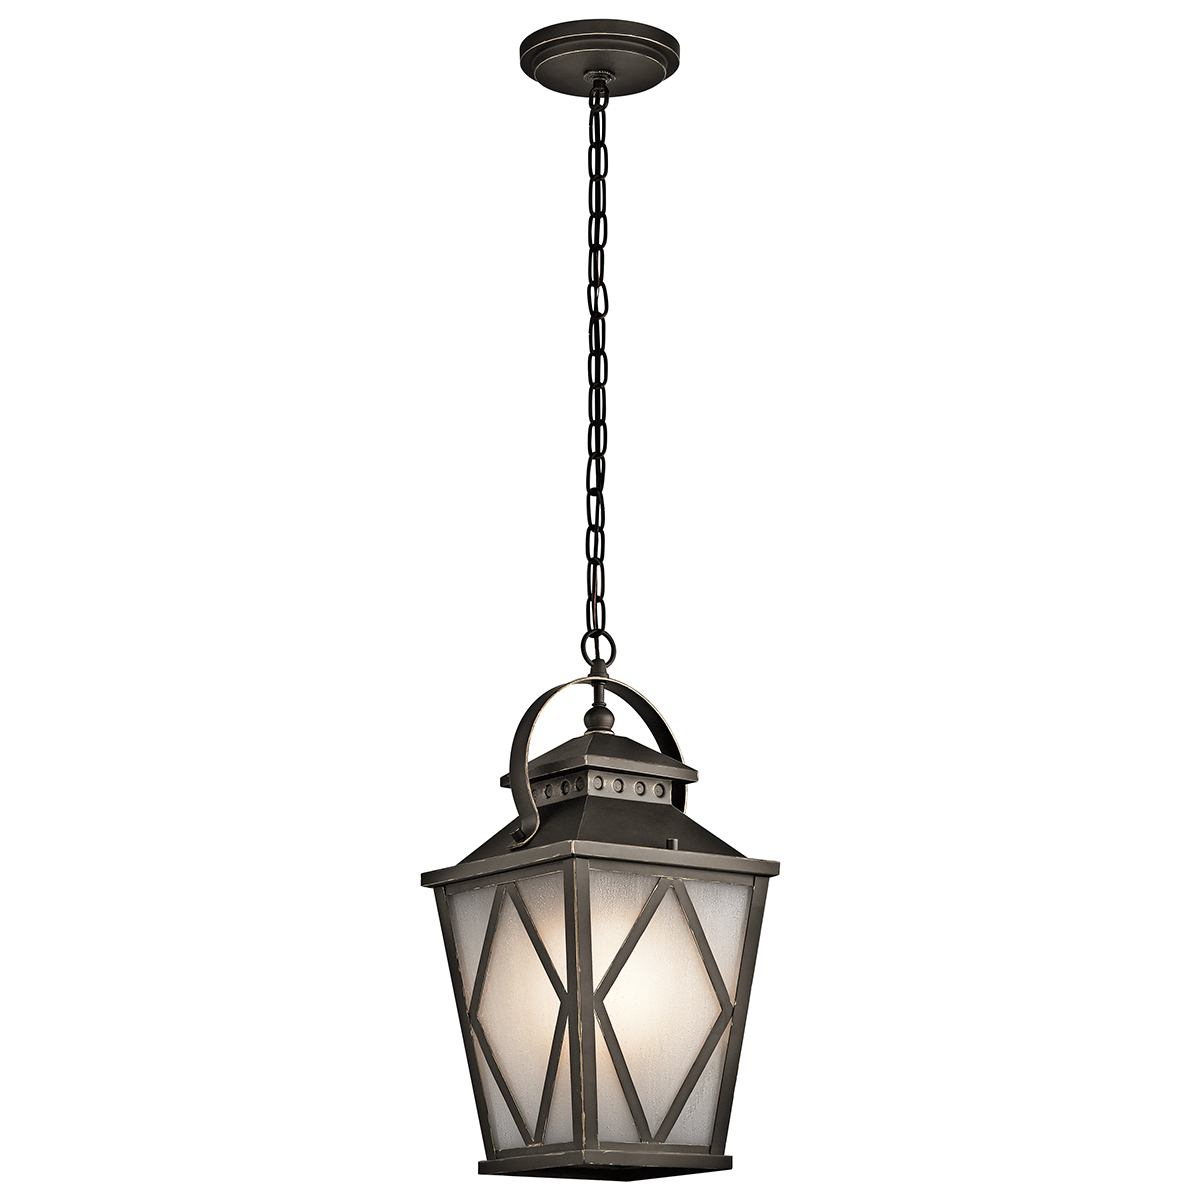 Kichler lighting 49294oz hayman bay 1 light outdoor Outdoor pendant lighting